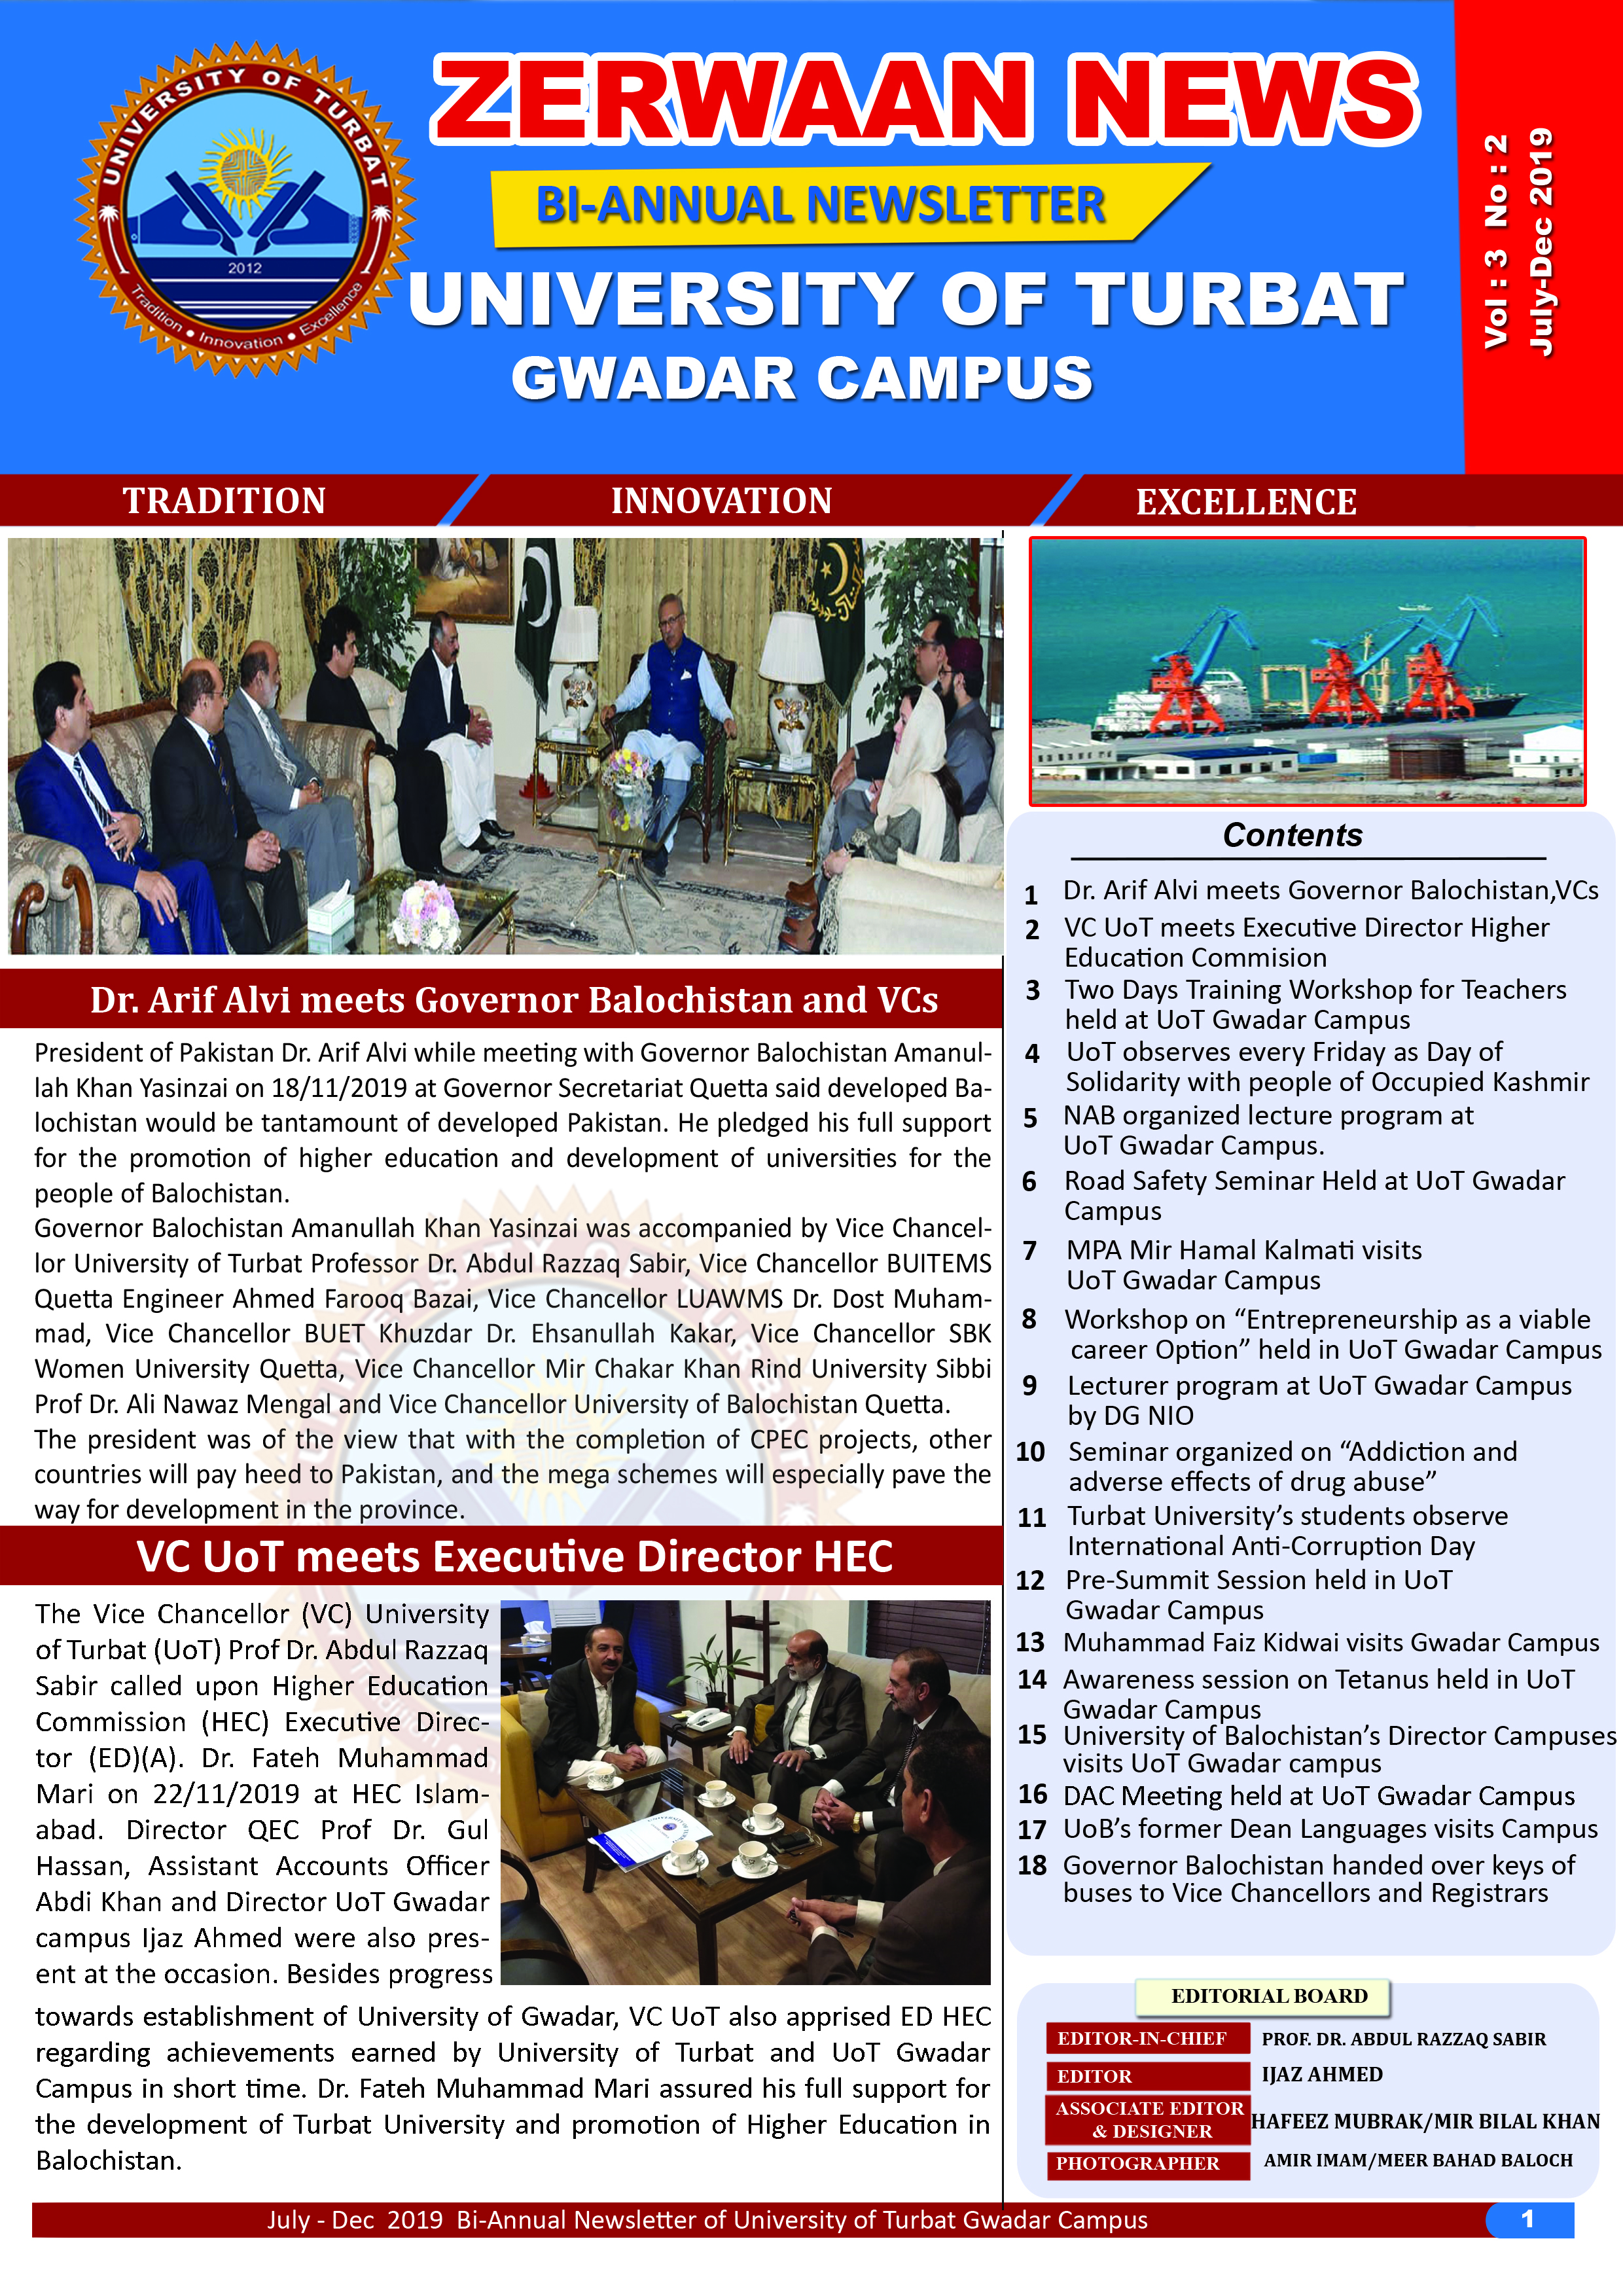 Zerwaan News July-December 2019 Edition